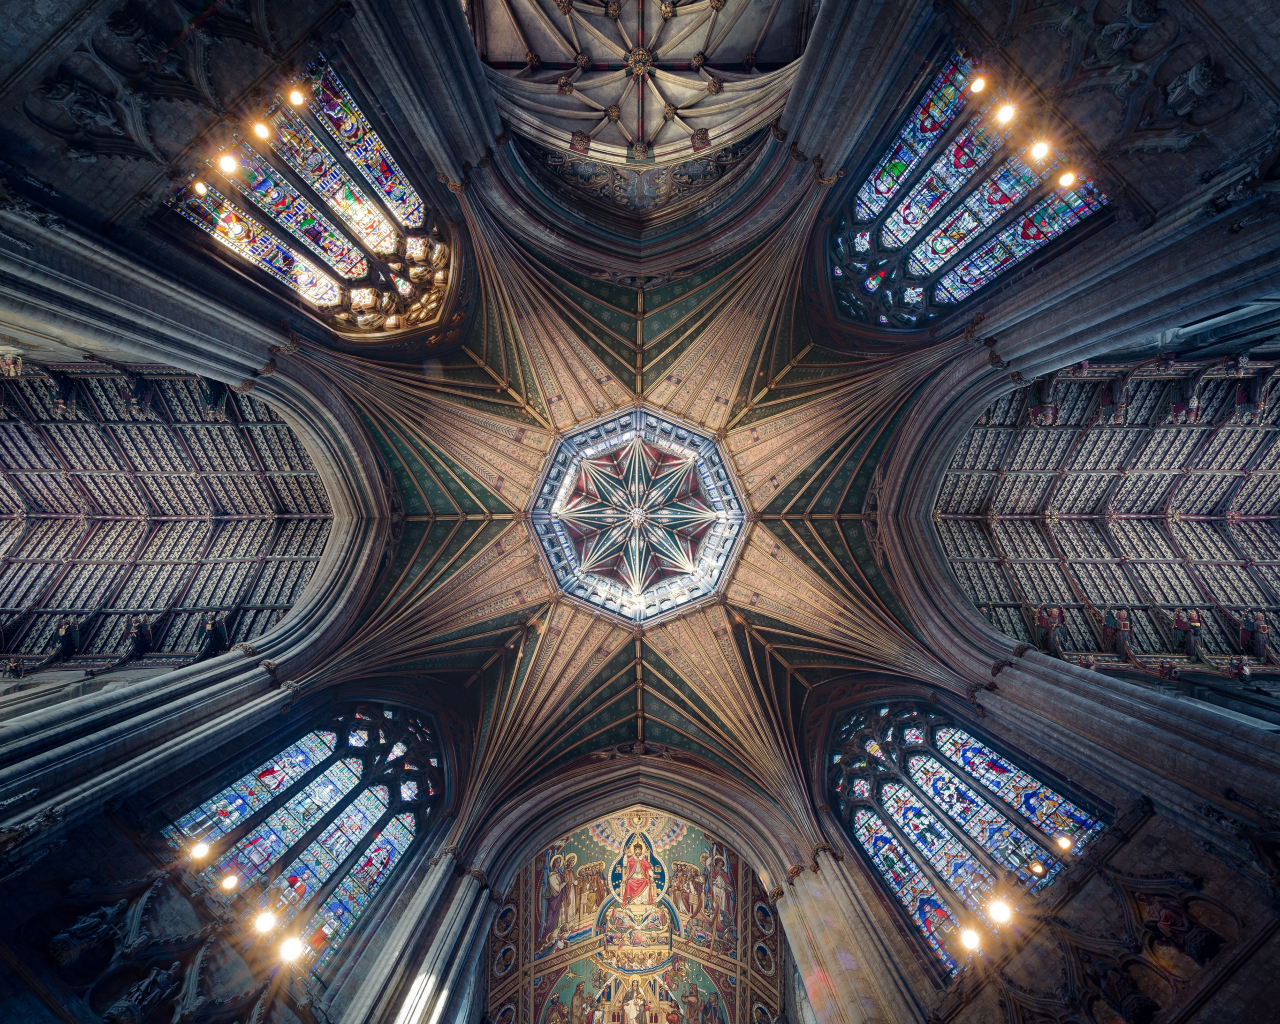 Ceiling cathedral symmetrical interior architecture 4k